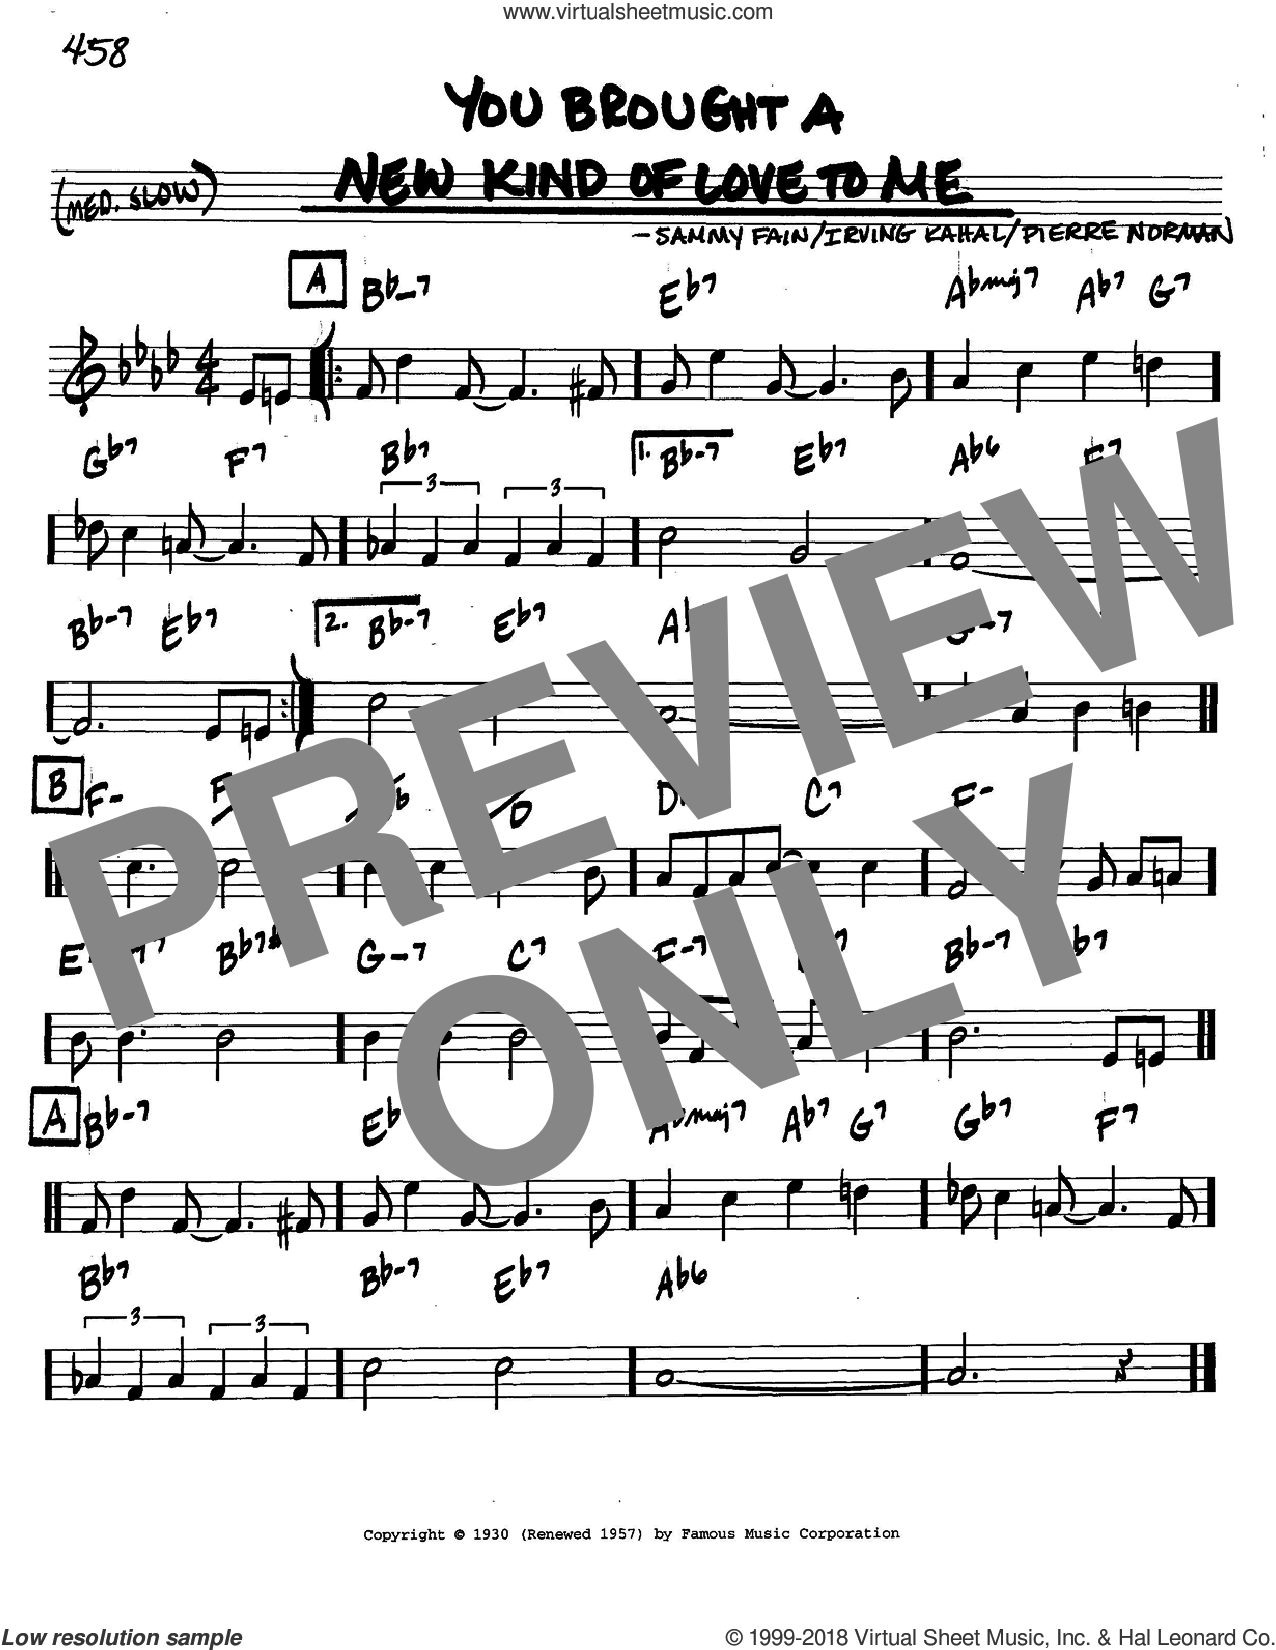 You Brought A New Kind Of Love To Me sheet music for voice and other instruments (in C) by Frank Sinatra, Irving Kahal, Pierre Norman and Sammy Fain, intermediate skill level